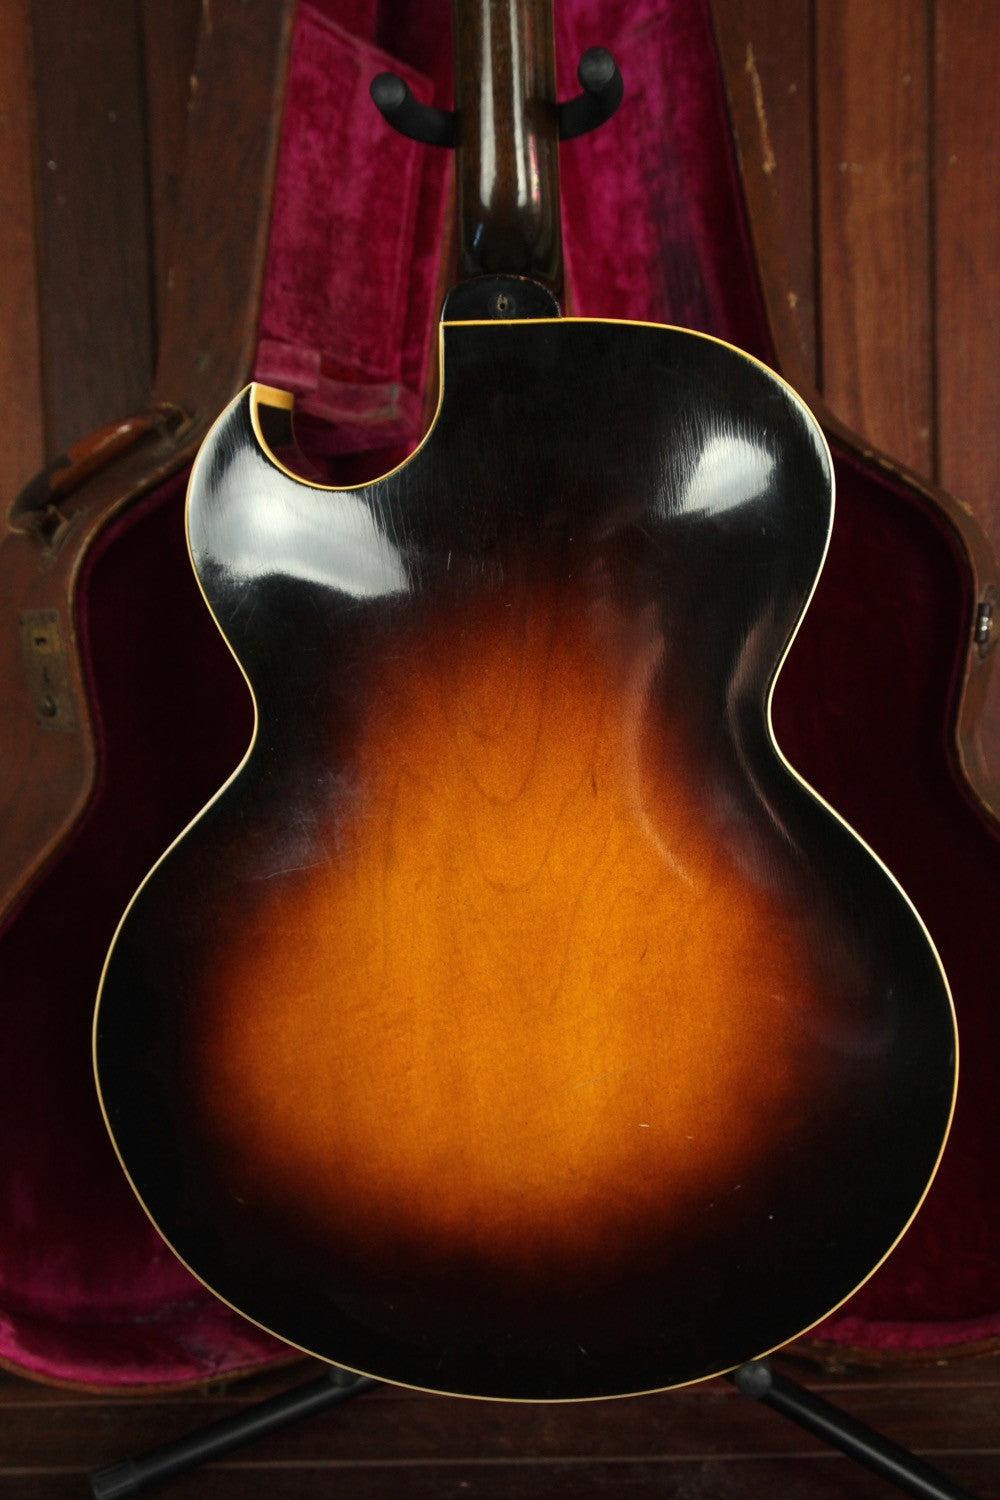 *NEW ARRIVAL* Gibson ES-175 Sunburst Hollowbody Electric Guitar 1953 Vintage